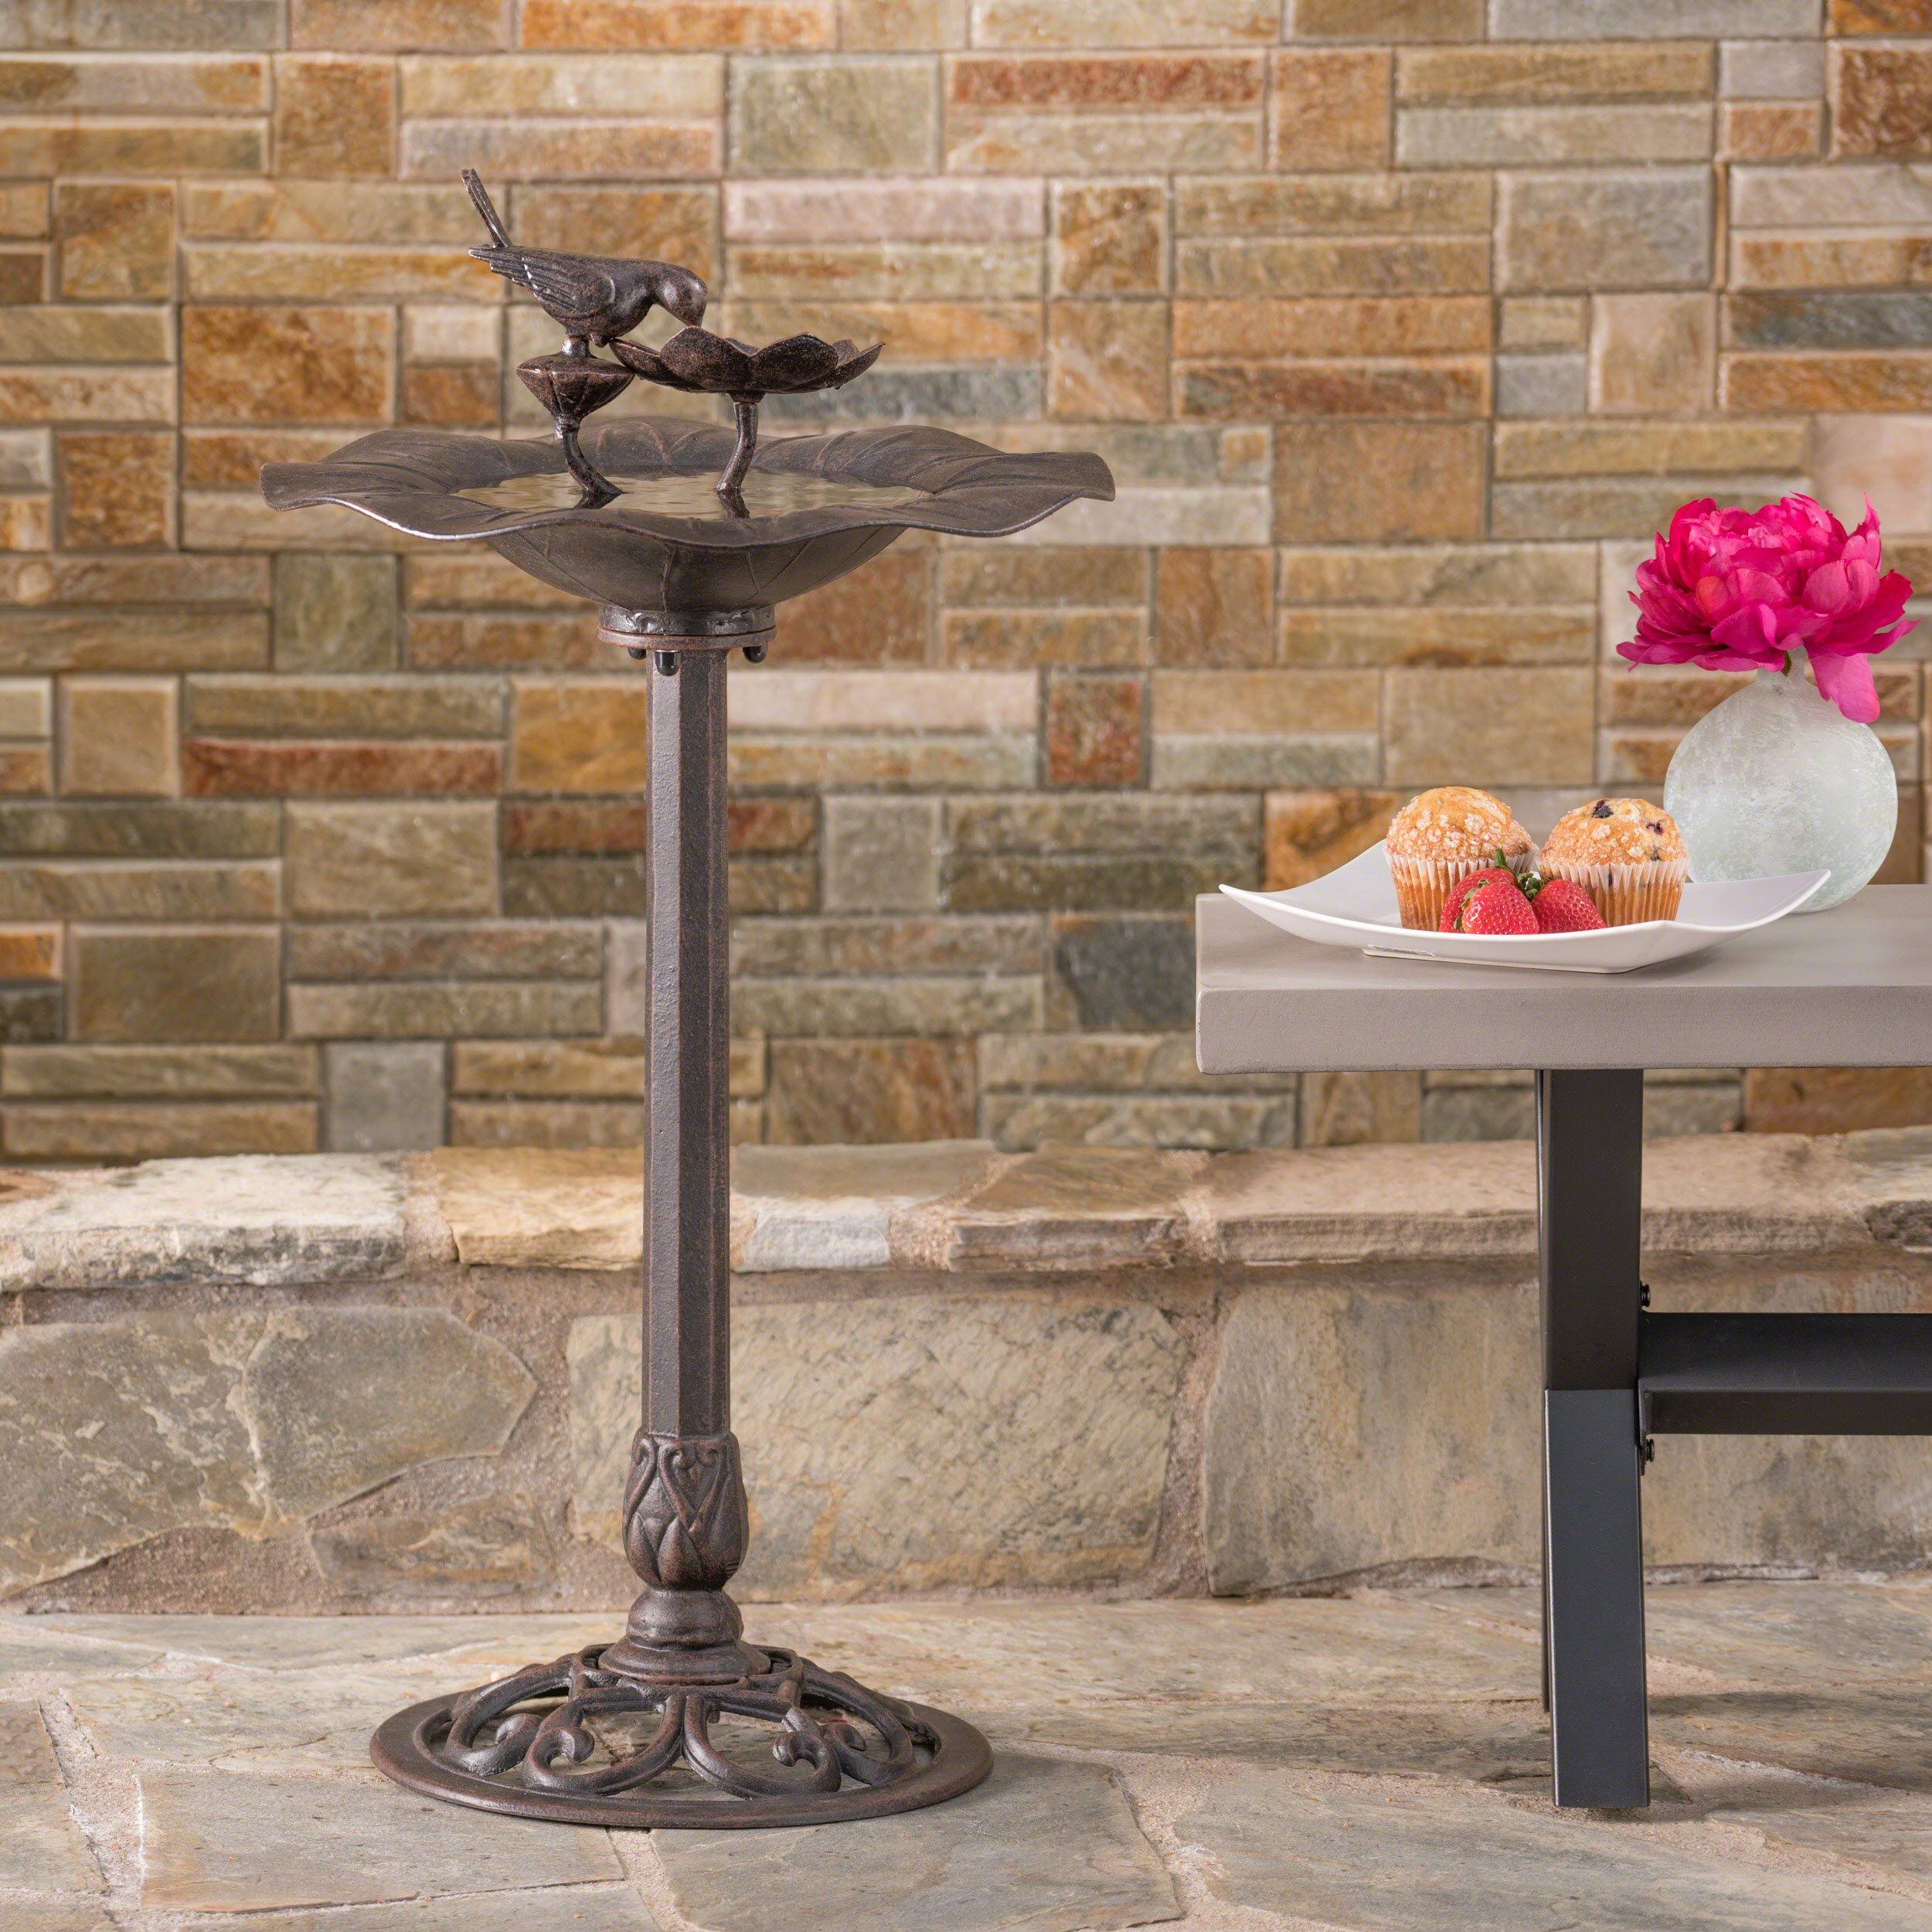 Lancaster Outdoor Bronze Finished Aluminum Top Bird Bath with Iron Base by Christopher Knight Home